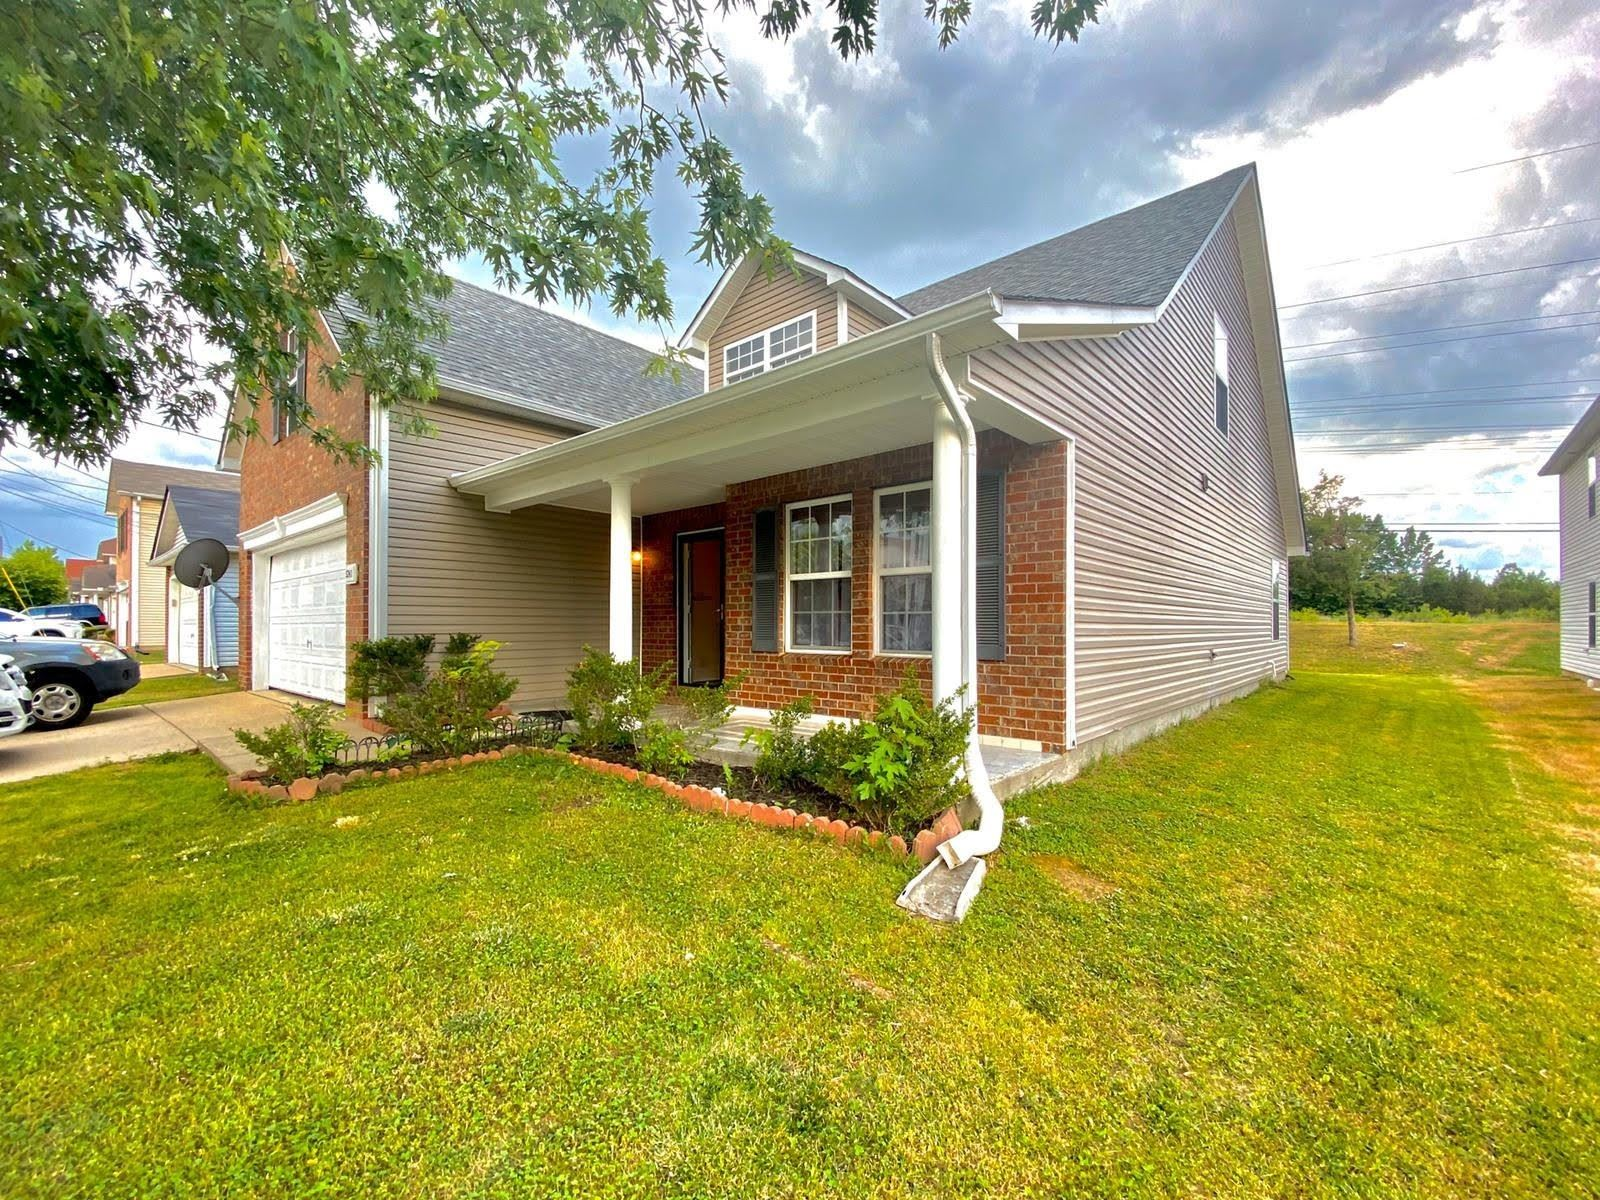 5241 Sunsail Dr, Antioch, TN 37013 - MLS#: 2178811